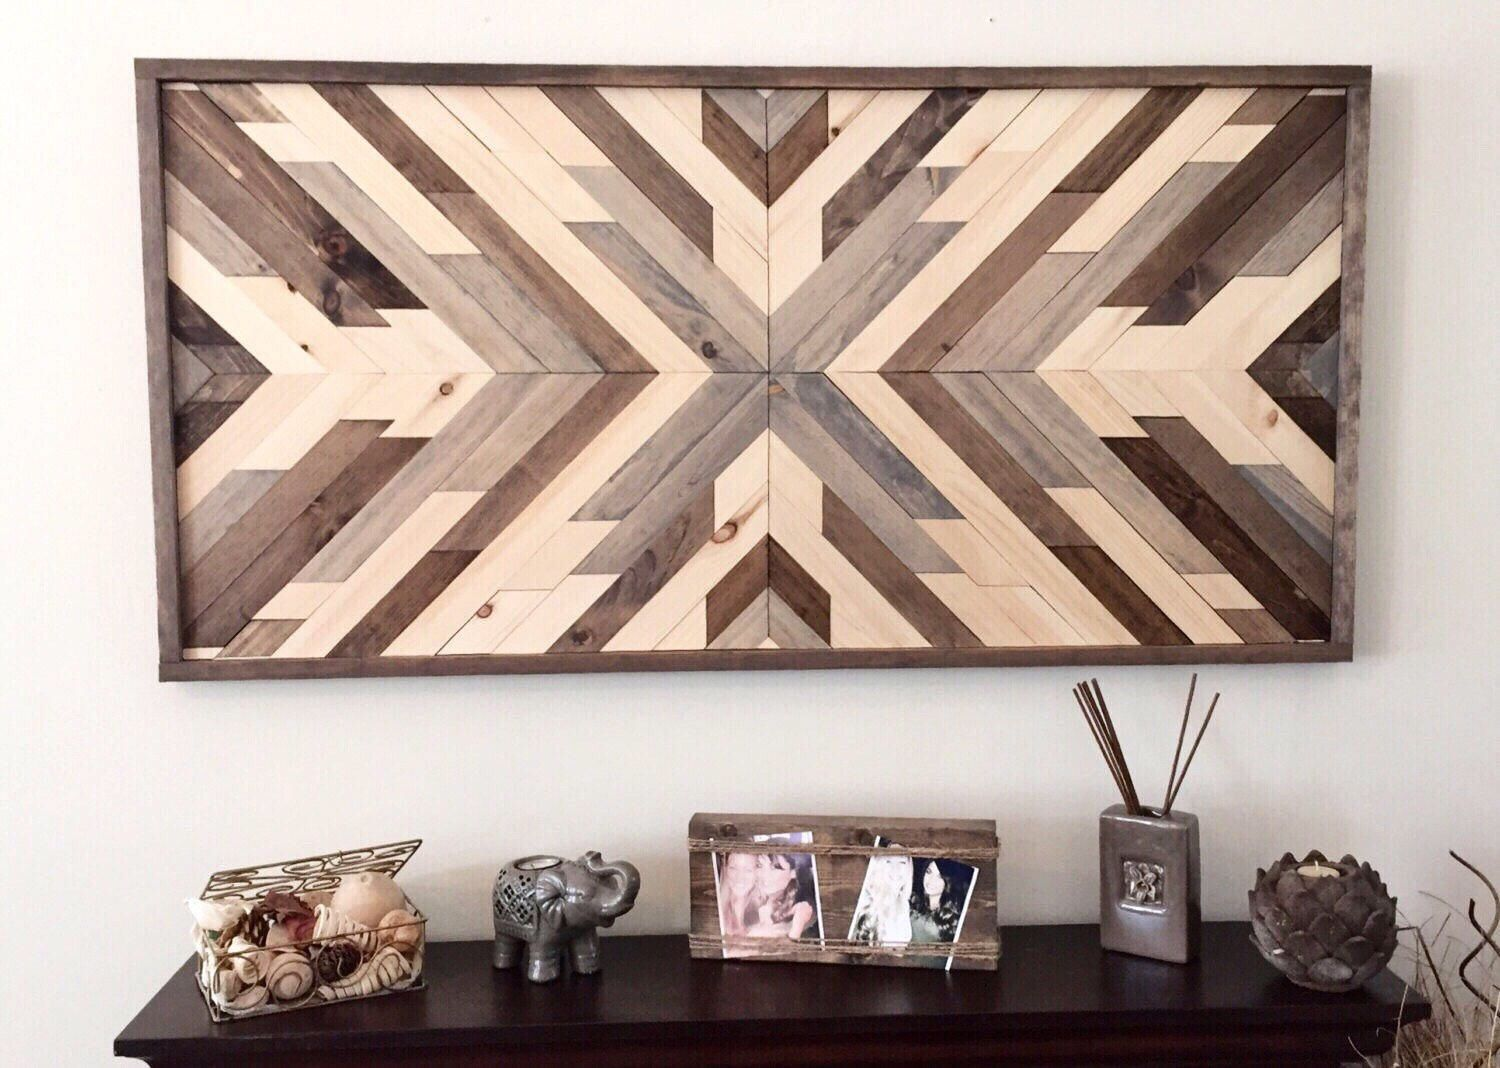 design reclaimed decor wall pottery wood cool barn modern large mirror art ideas